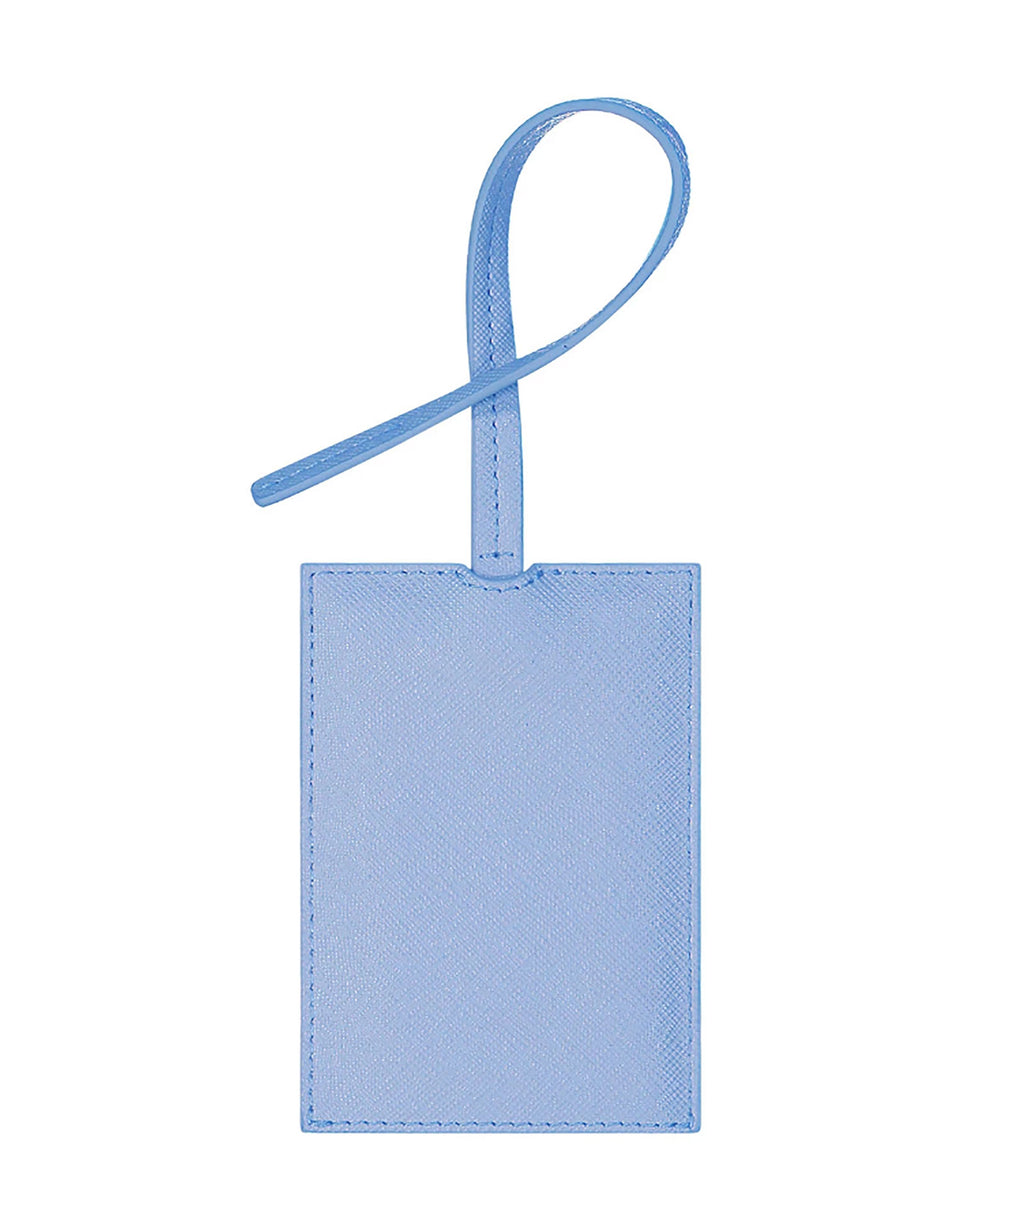 Stoney Clover Periwinkle Luggage Tag